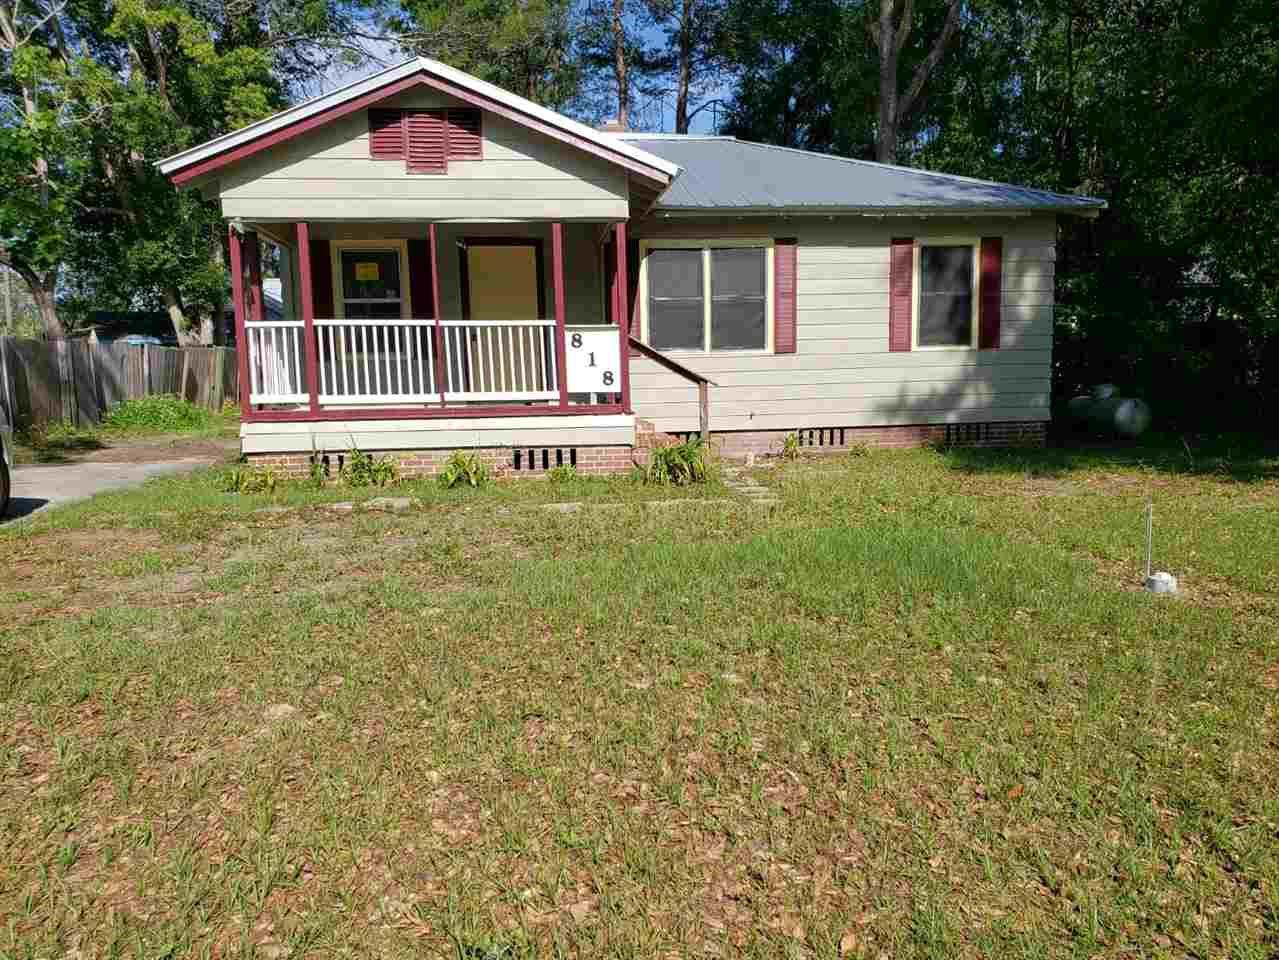 818 Jefferson Street, Perry, FL 32347 - MLS#: 318134